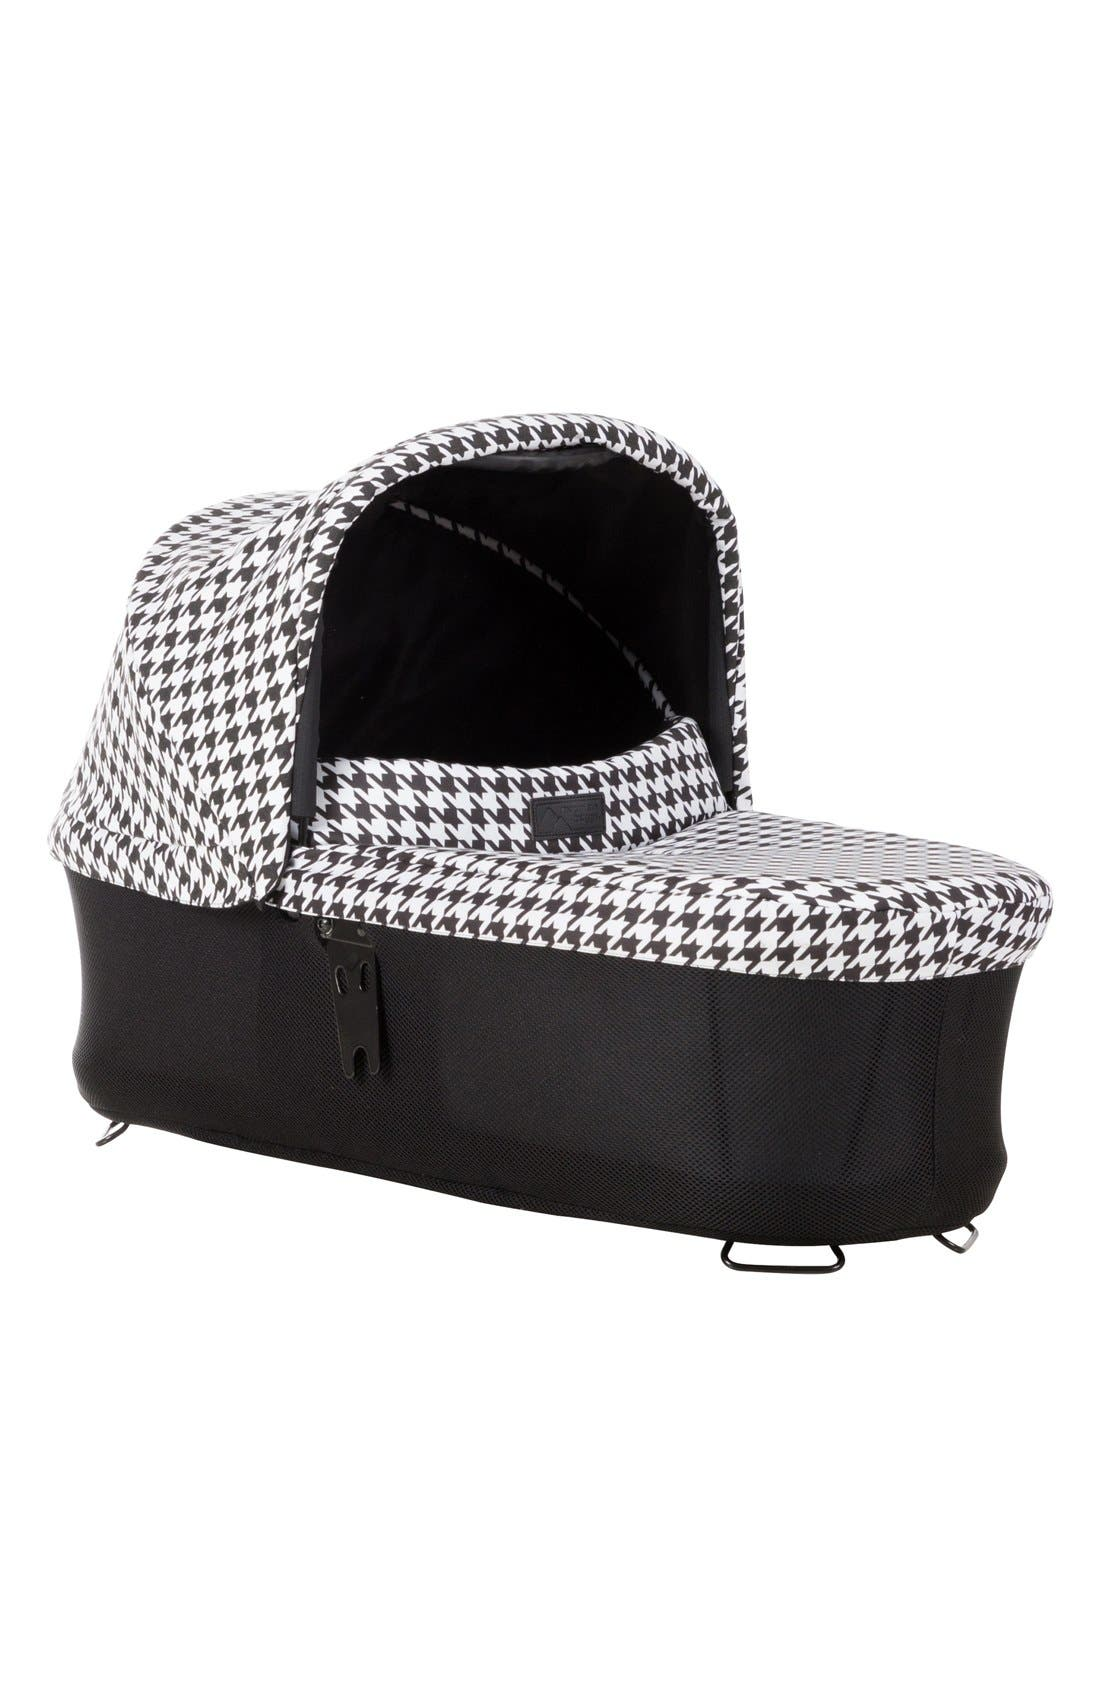 Alternate Image 1 Selected - mountain buggy Urban Jungle - The Luxury Collection Carrycot Plus